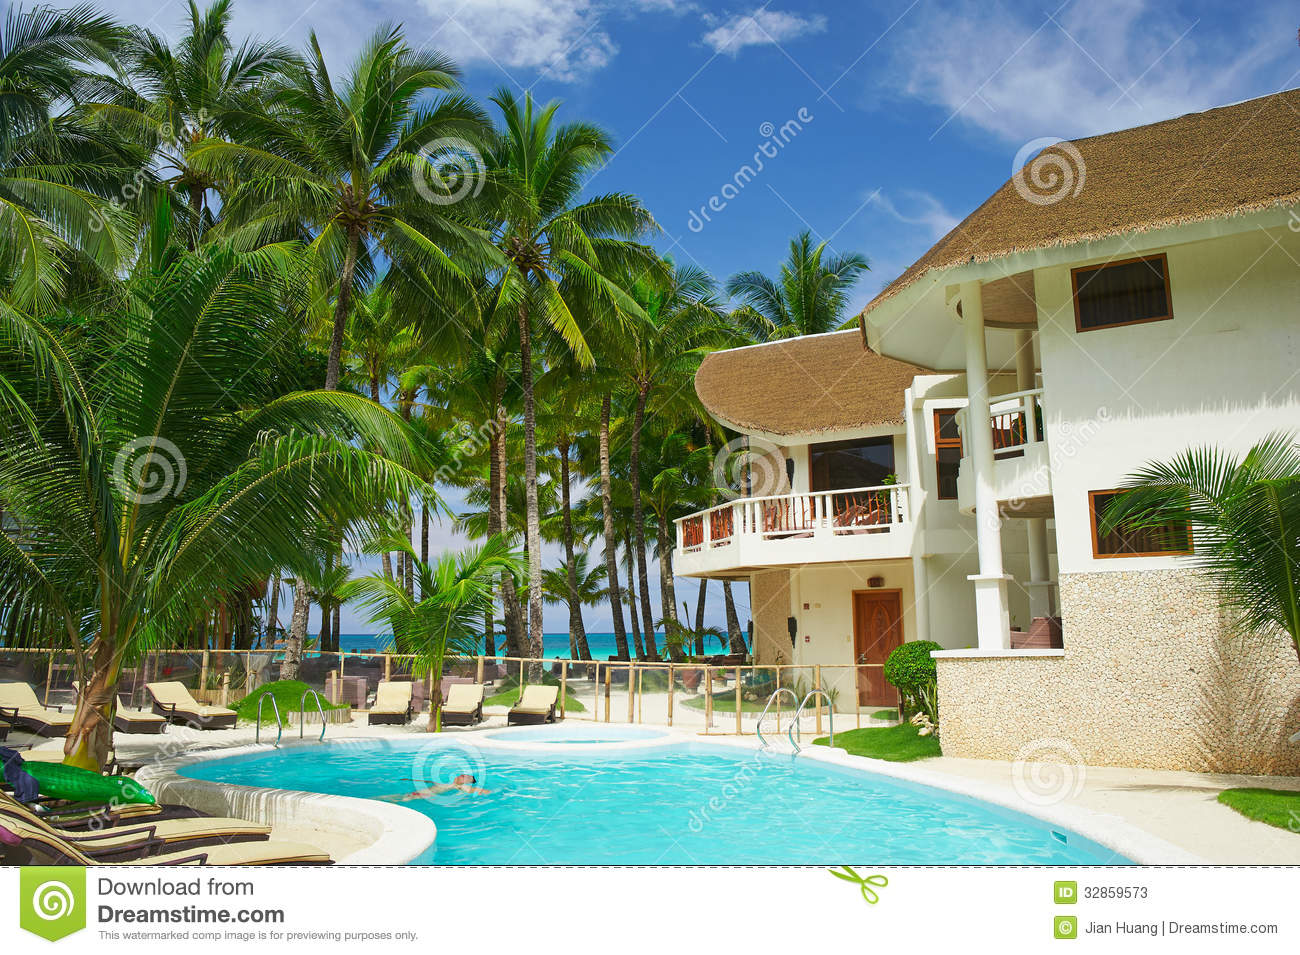 Hotel Tropical Environment Travel In Philippines Boracay Island.